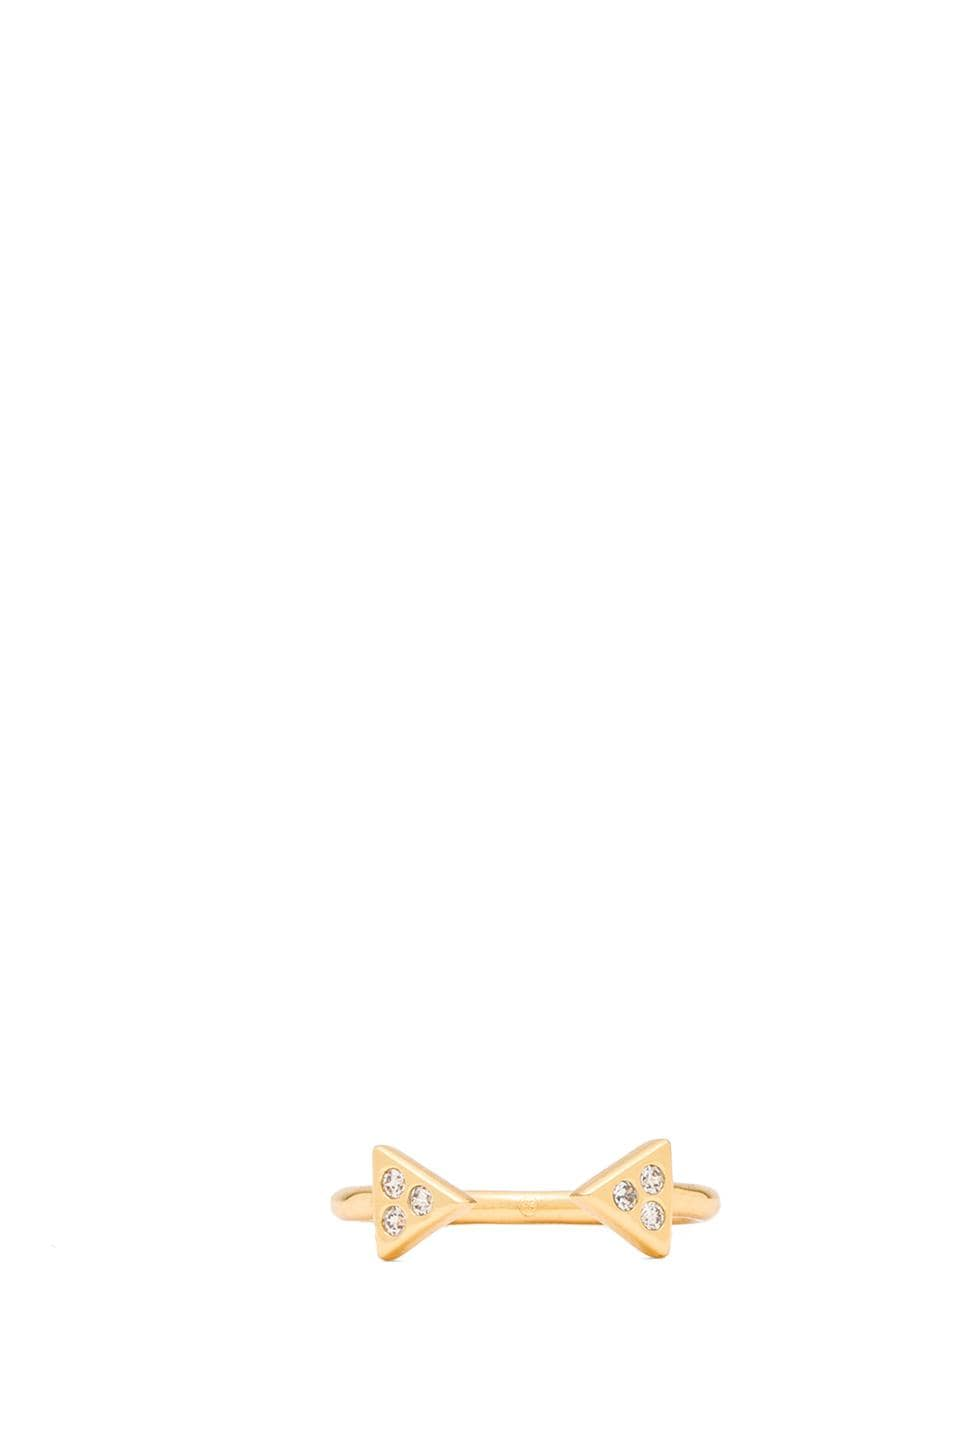 gorjana Artemis Cuff Ring in Gold